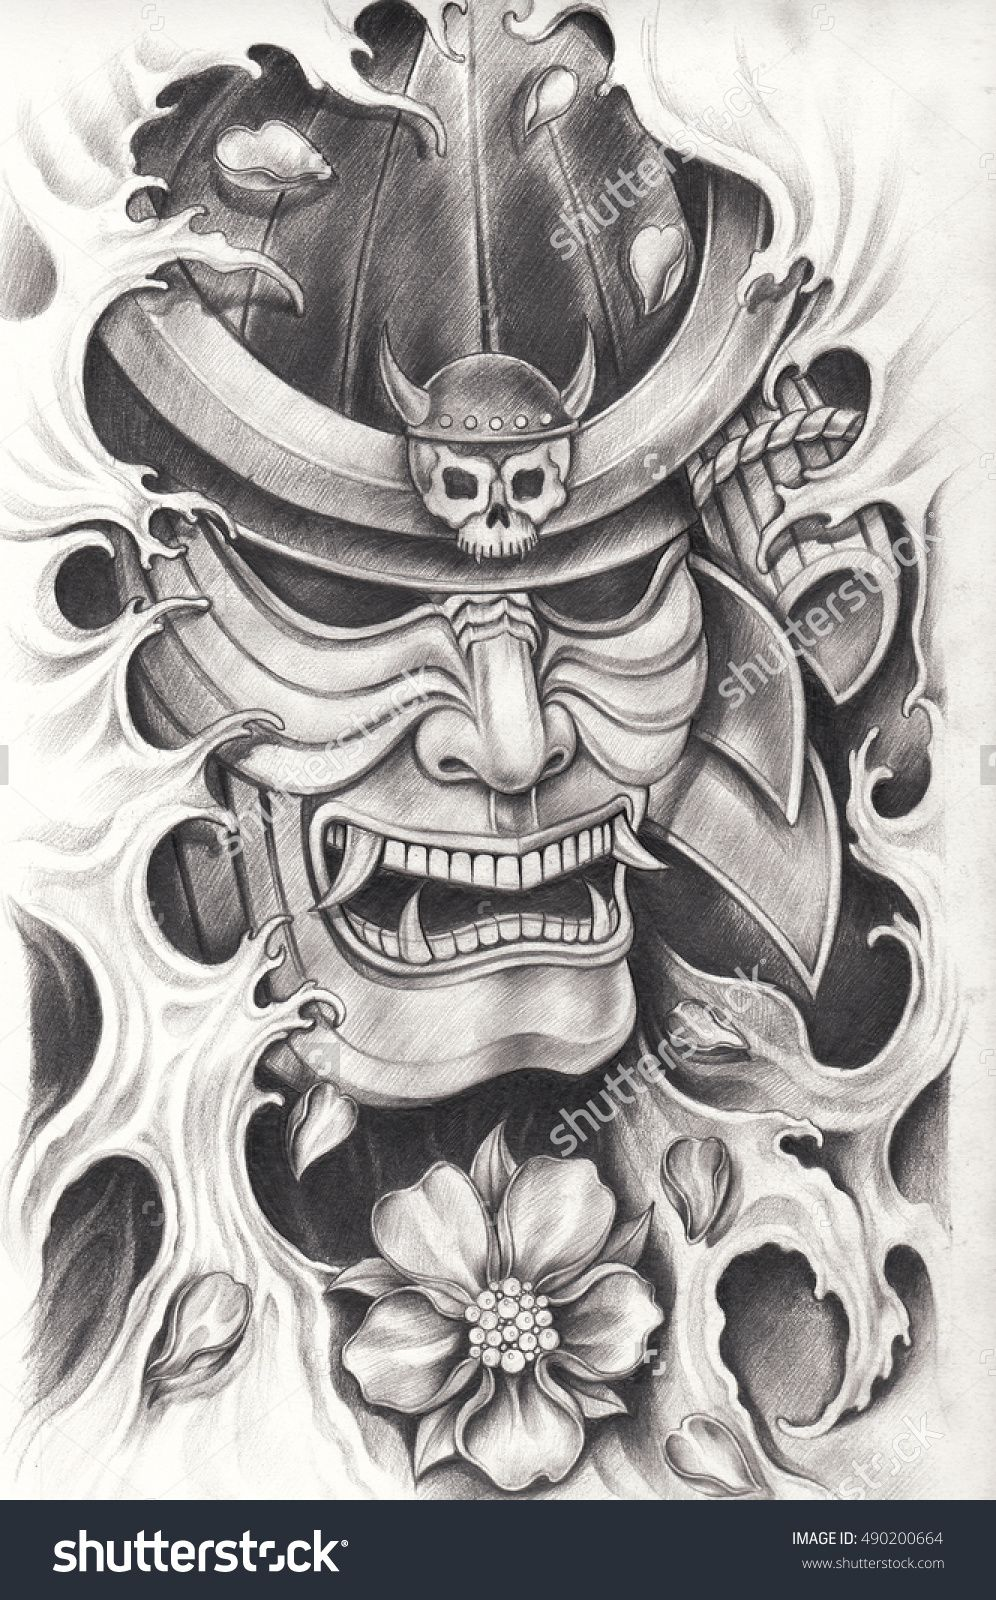 samurai warrior tattoo design hand pencil drawing on paper tt pinterest samurai warrior. Black Bedroom Furniture Sets. Home Design Ideas